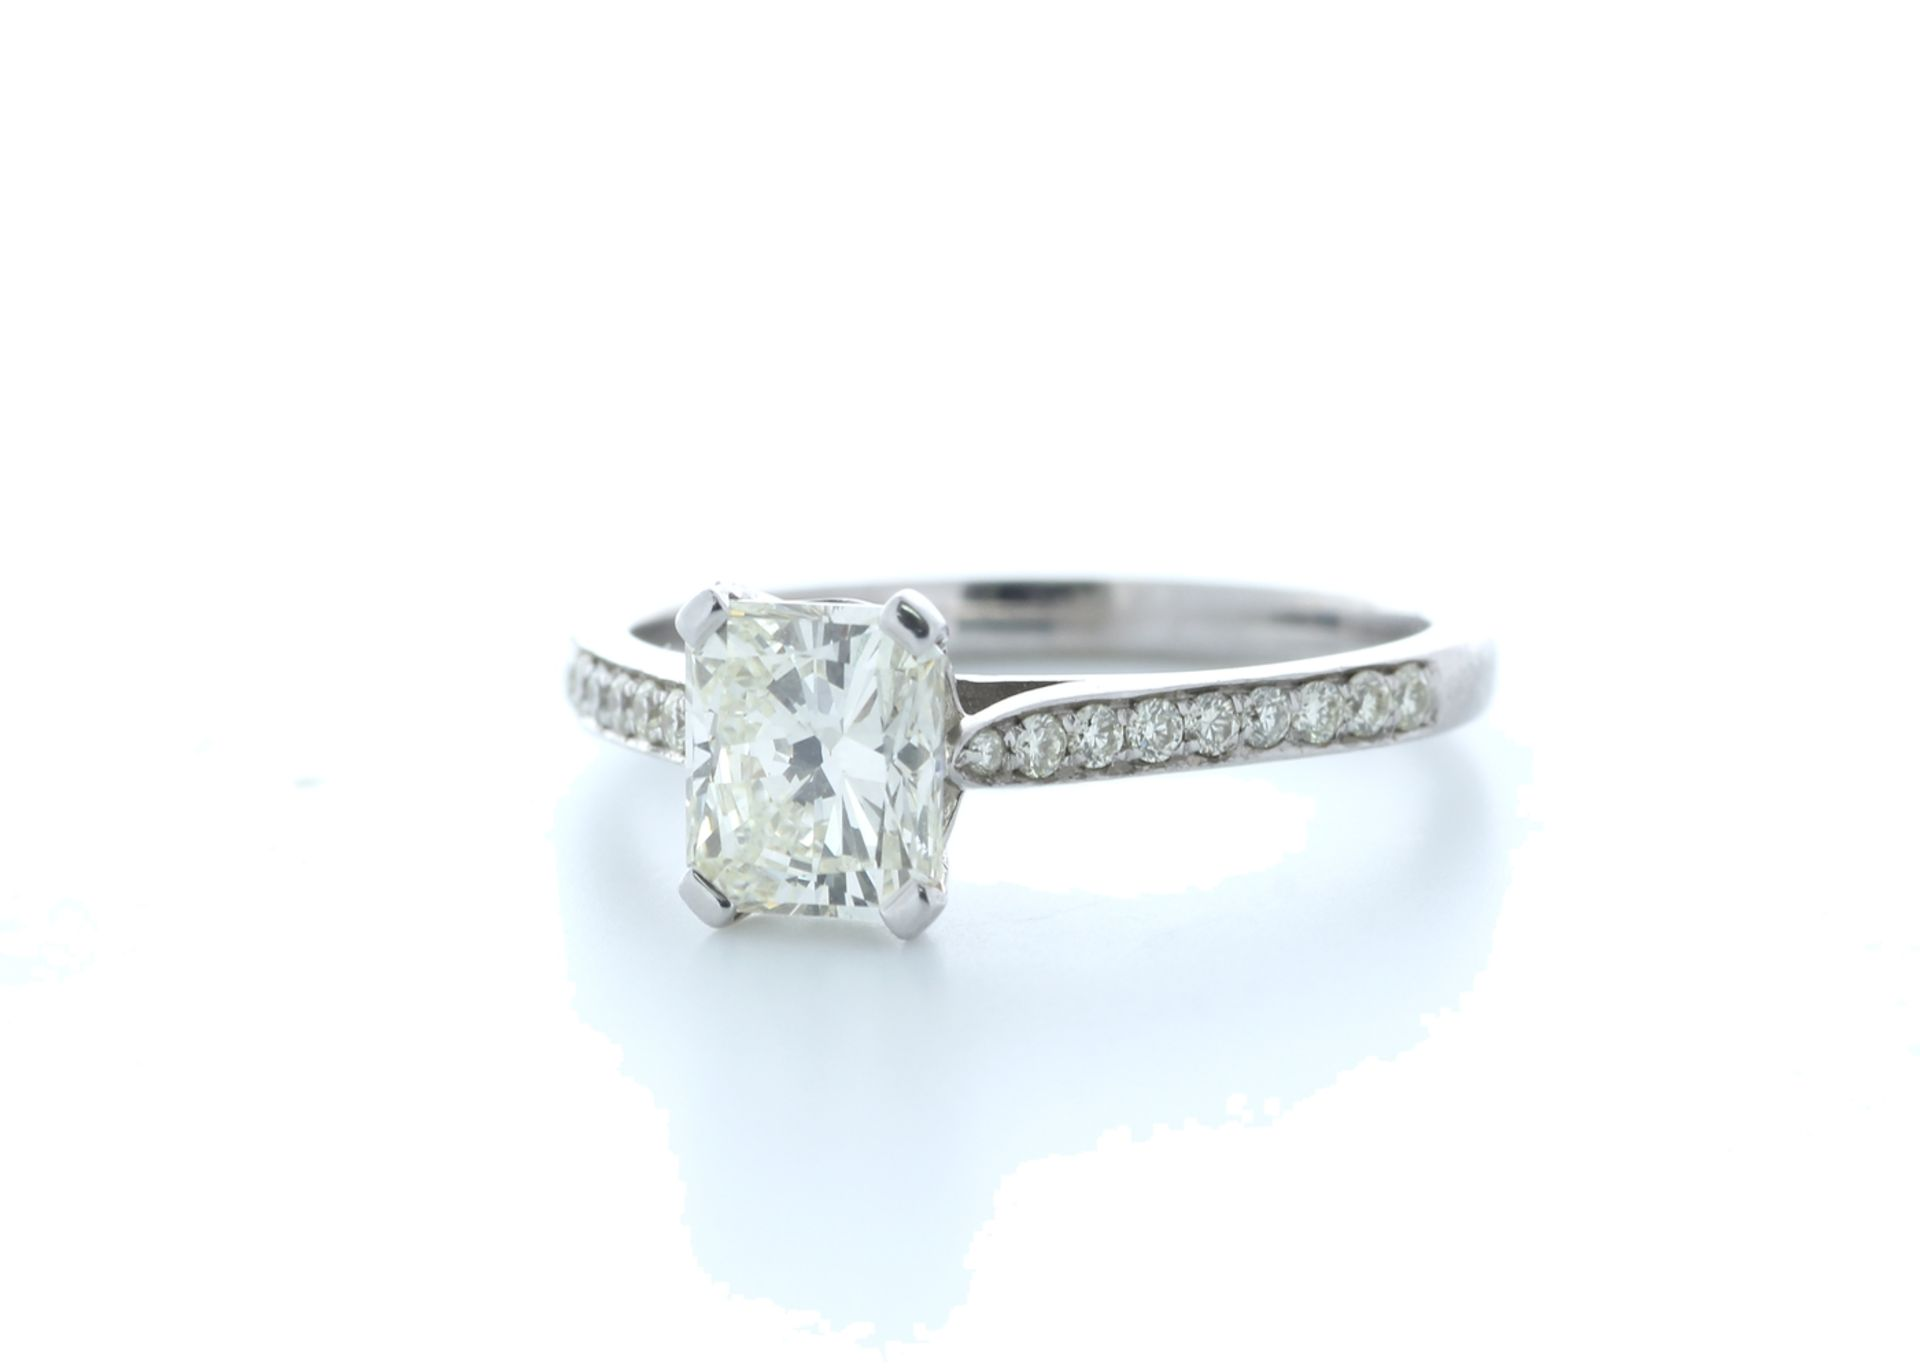 18ct White Gold Radiant Cut Diamond Ring 1.23 (1.08) Carats - Valued by IDI £19,500.00 - 18ct - Image 2 of 5